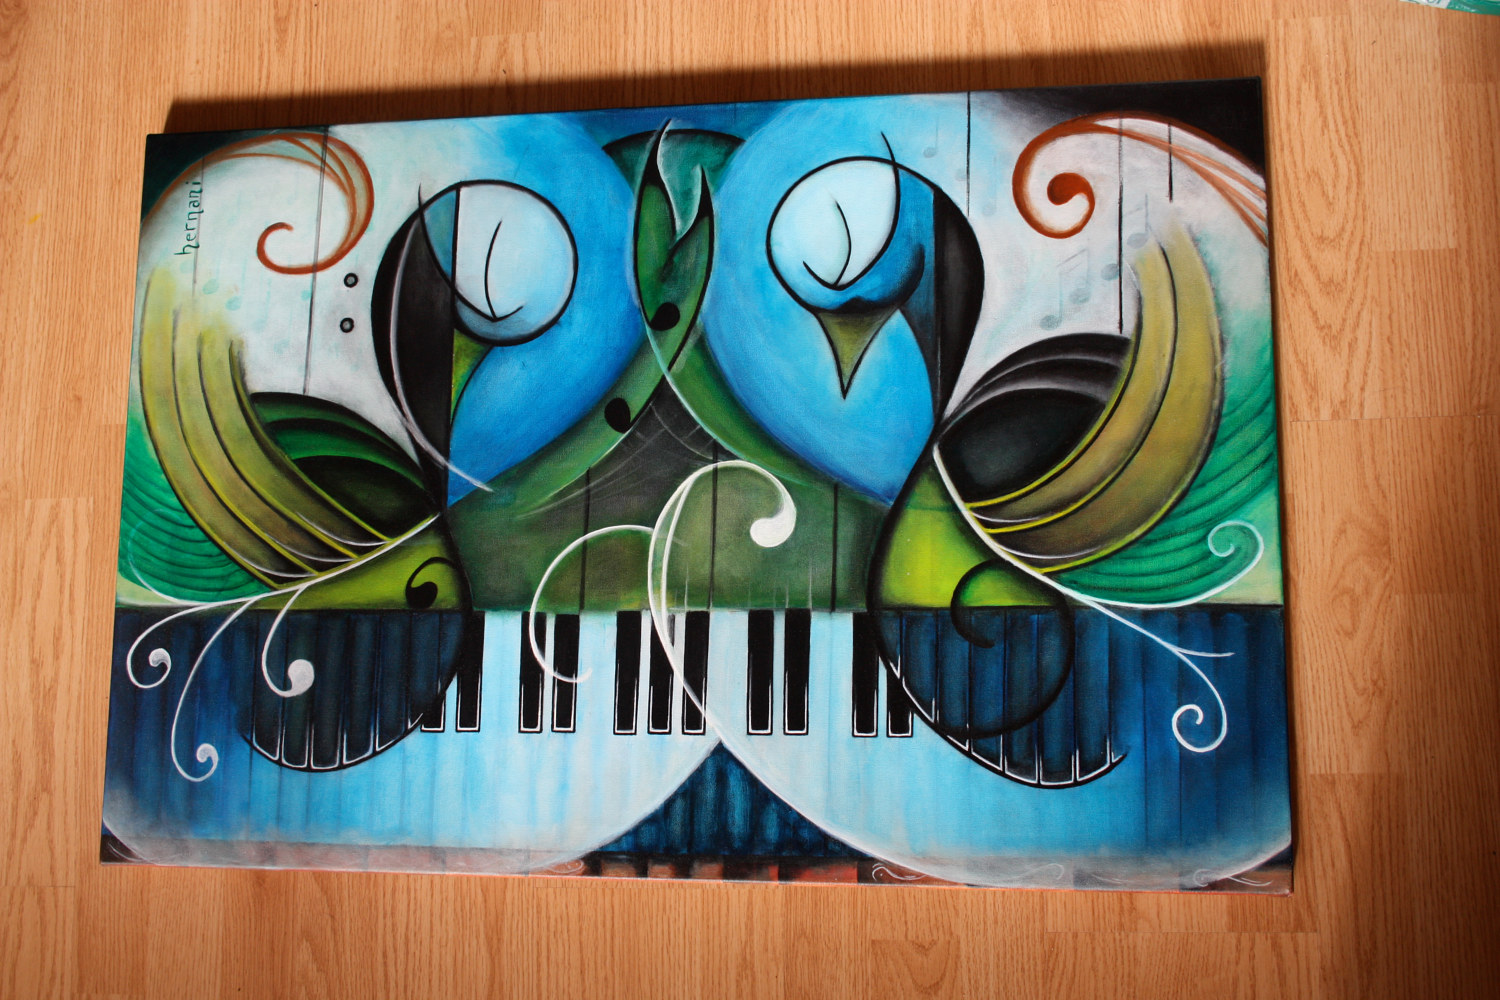 Acrylic painting The Geometry of Art, Music, and Life by Bruno Hernani